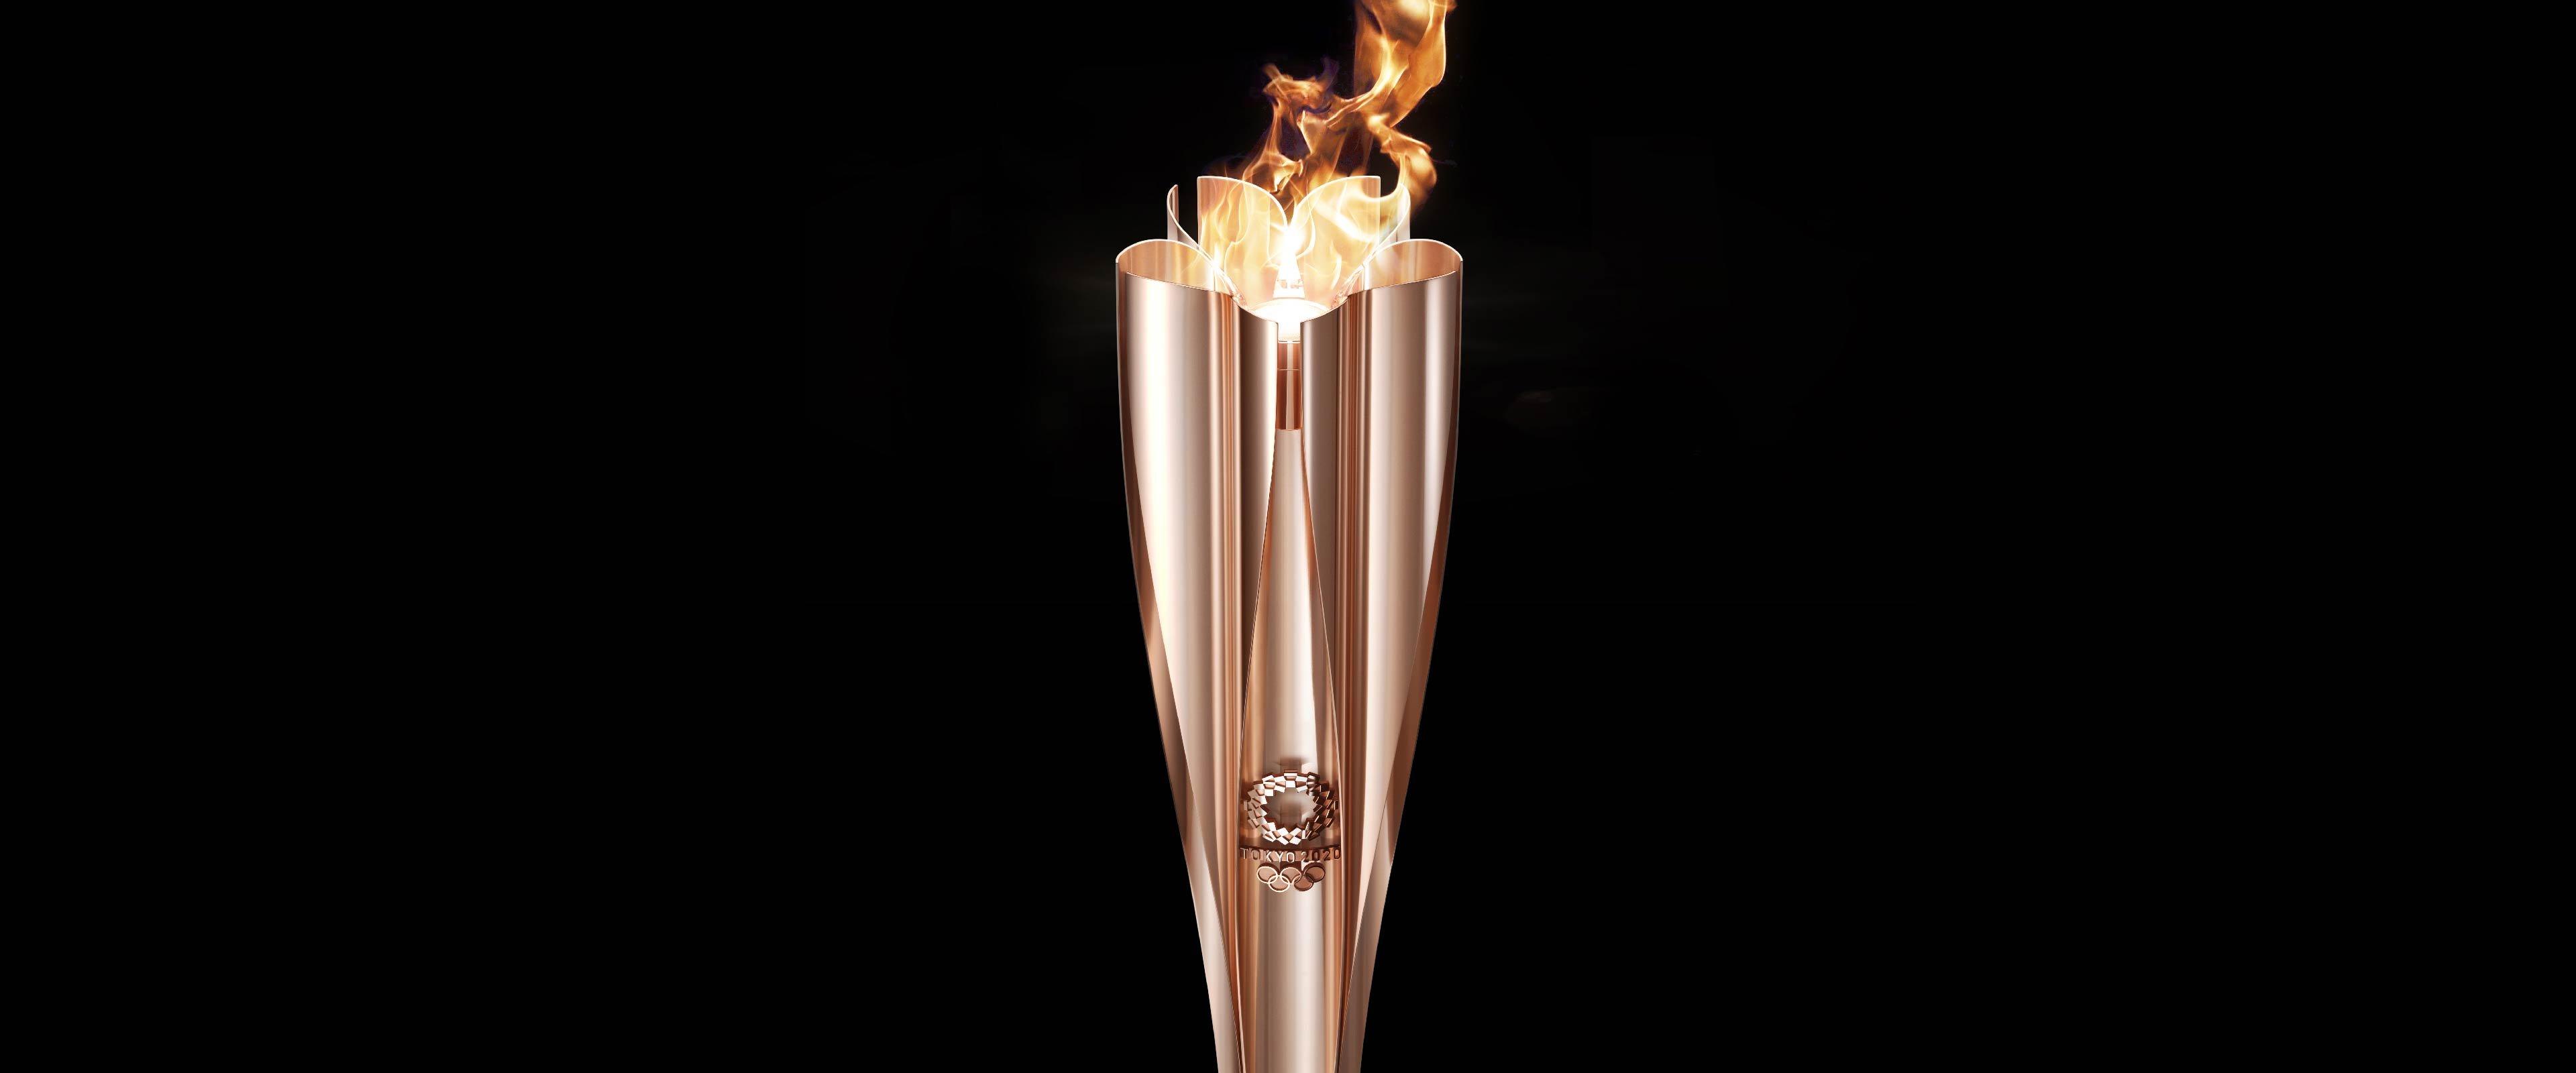 Olympic Torch Relay - History, Highlights & Torch Bearers